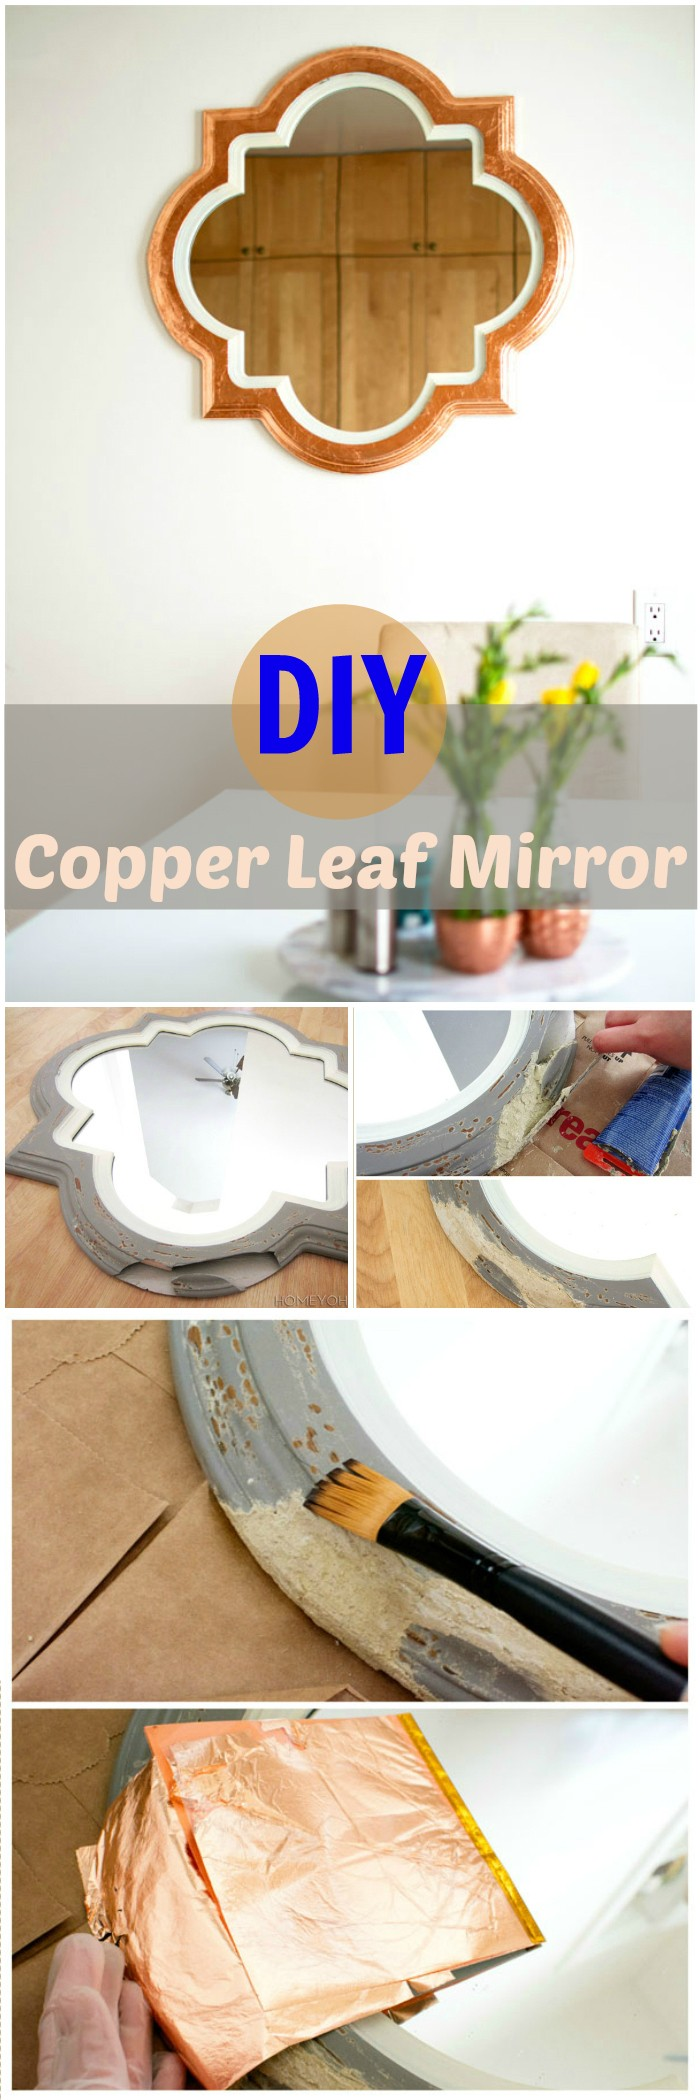 DIY Projects For The Home Decorations DIY Copper Leaf Mirror